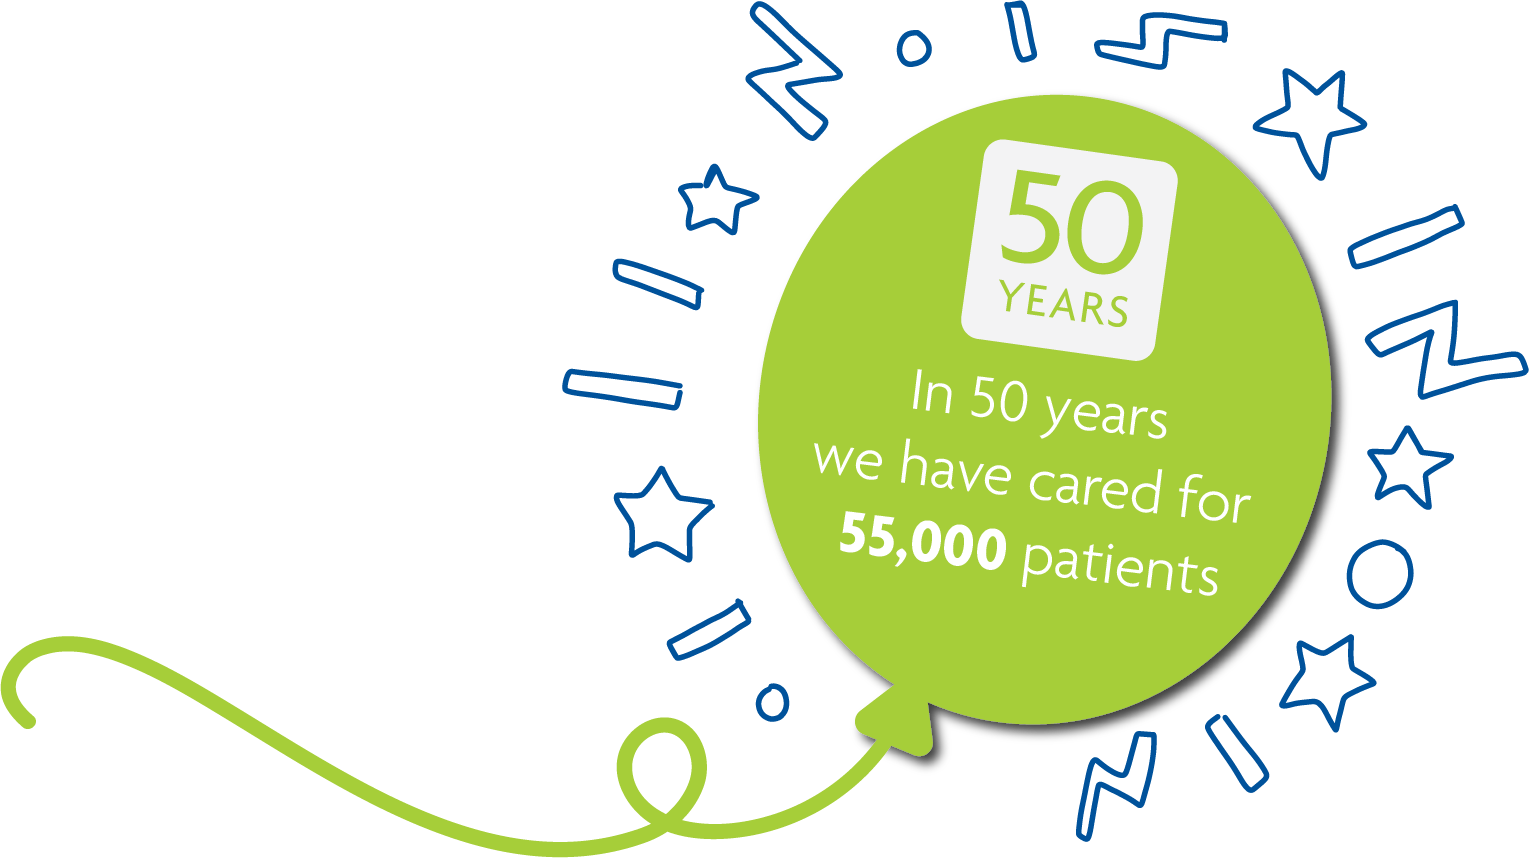 In 50 years we have cared for 55,000 patients